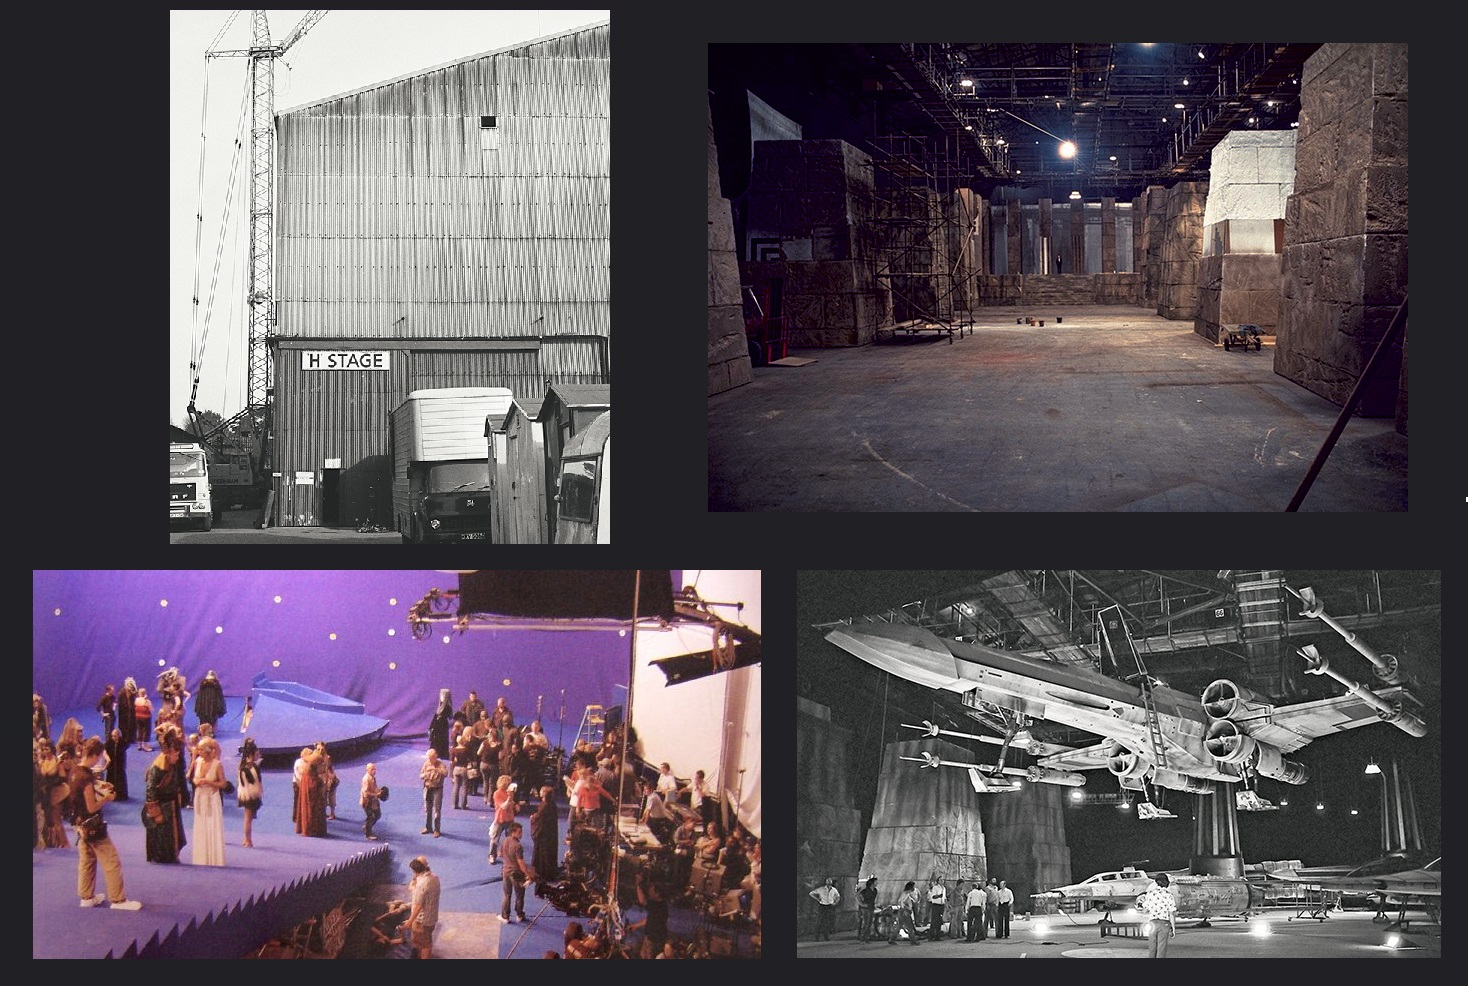 Shepperton Studios, clockwise from top: H Stage; End Ceremony set; Rebel hangar set; Galaxies Opera House set in 2004